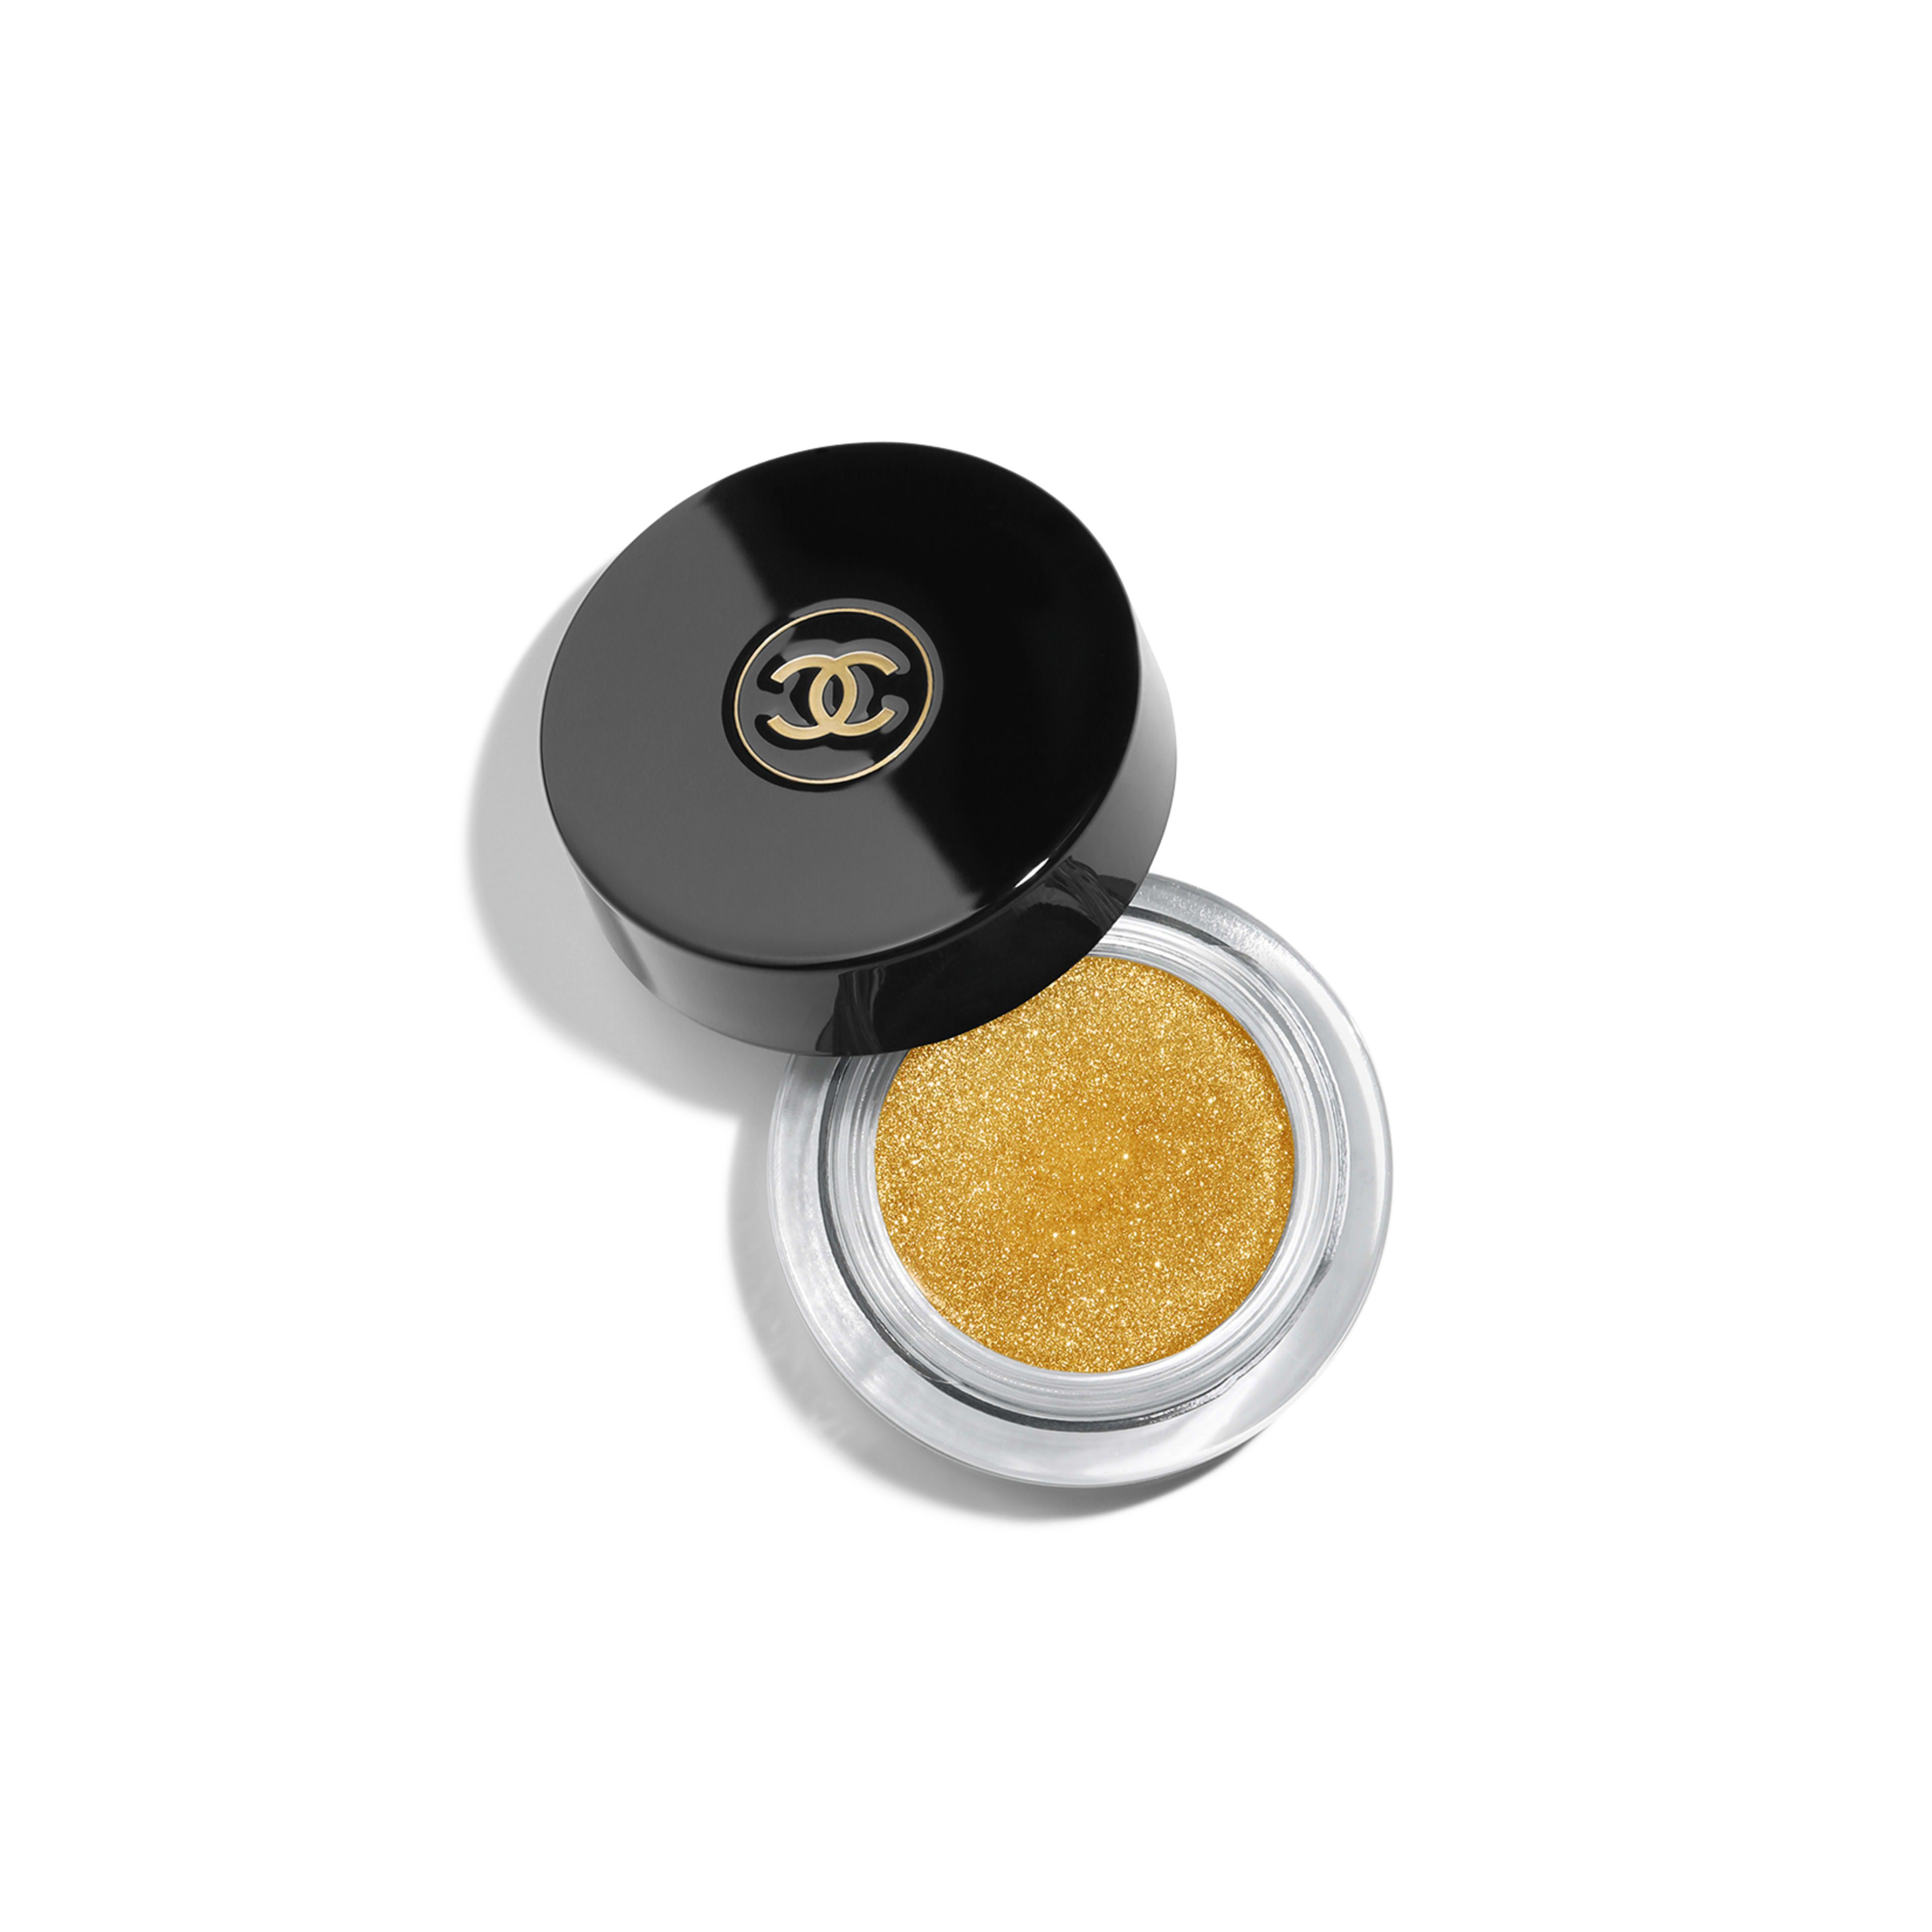 OMBRE PREMIÈRE GLOSS Top Coat Eyeshadow SOLAIRE CHANEL